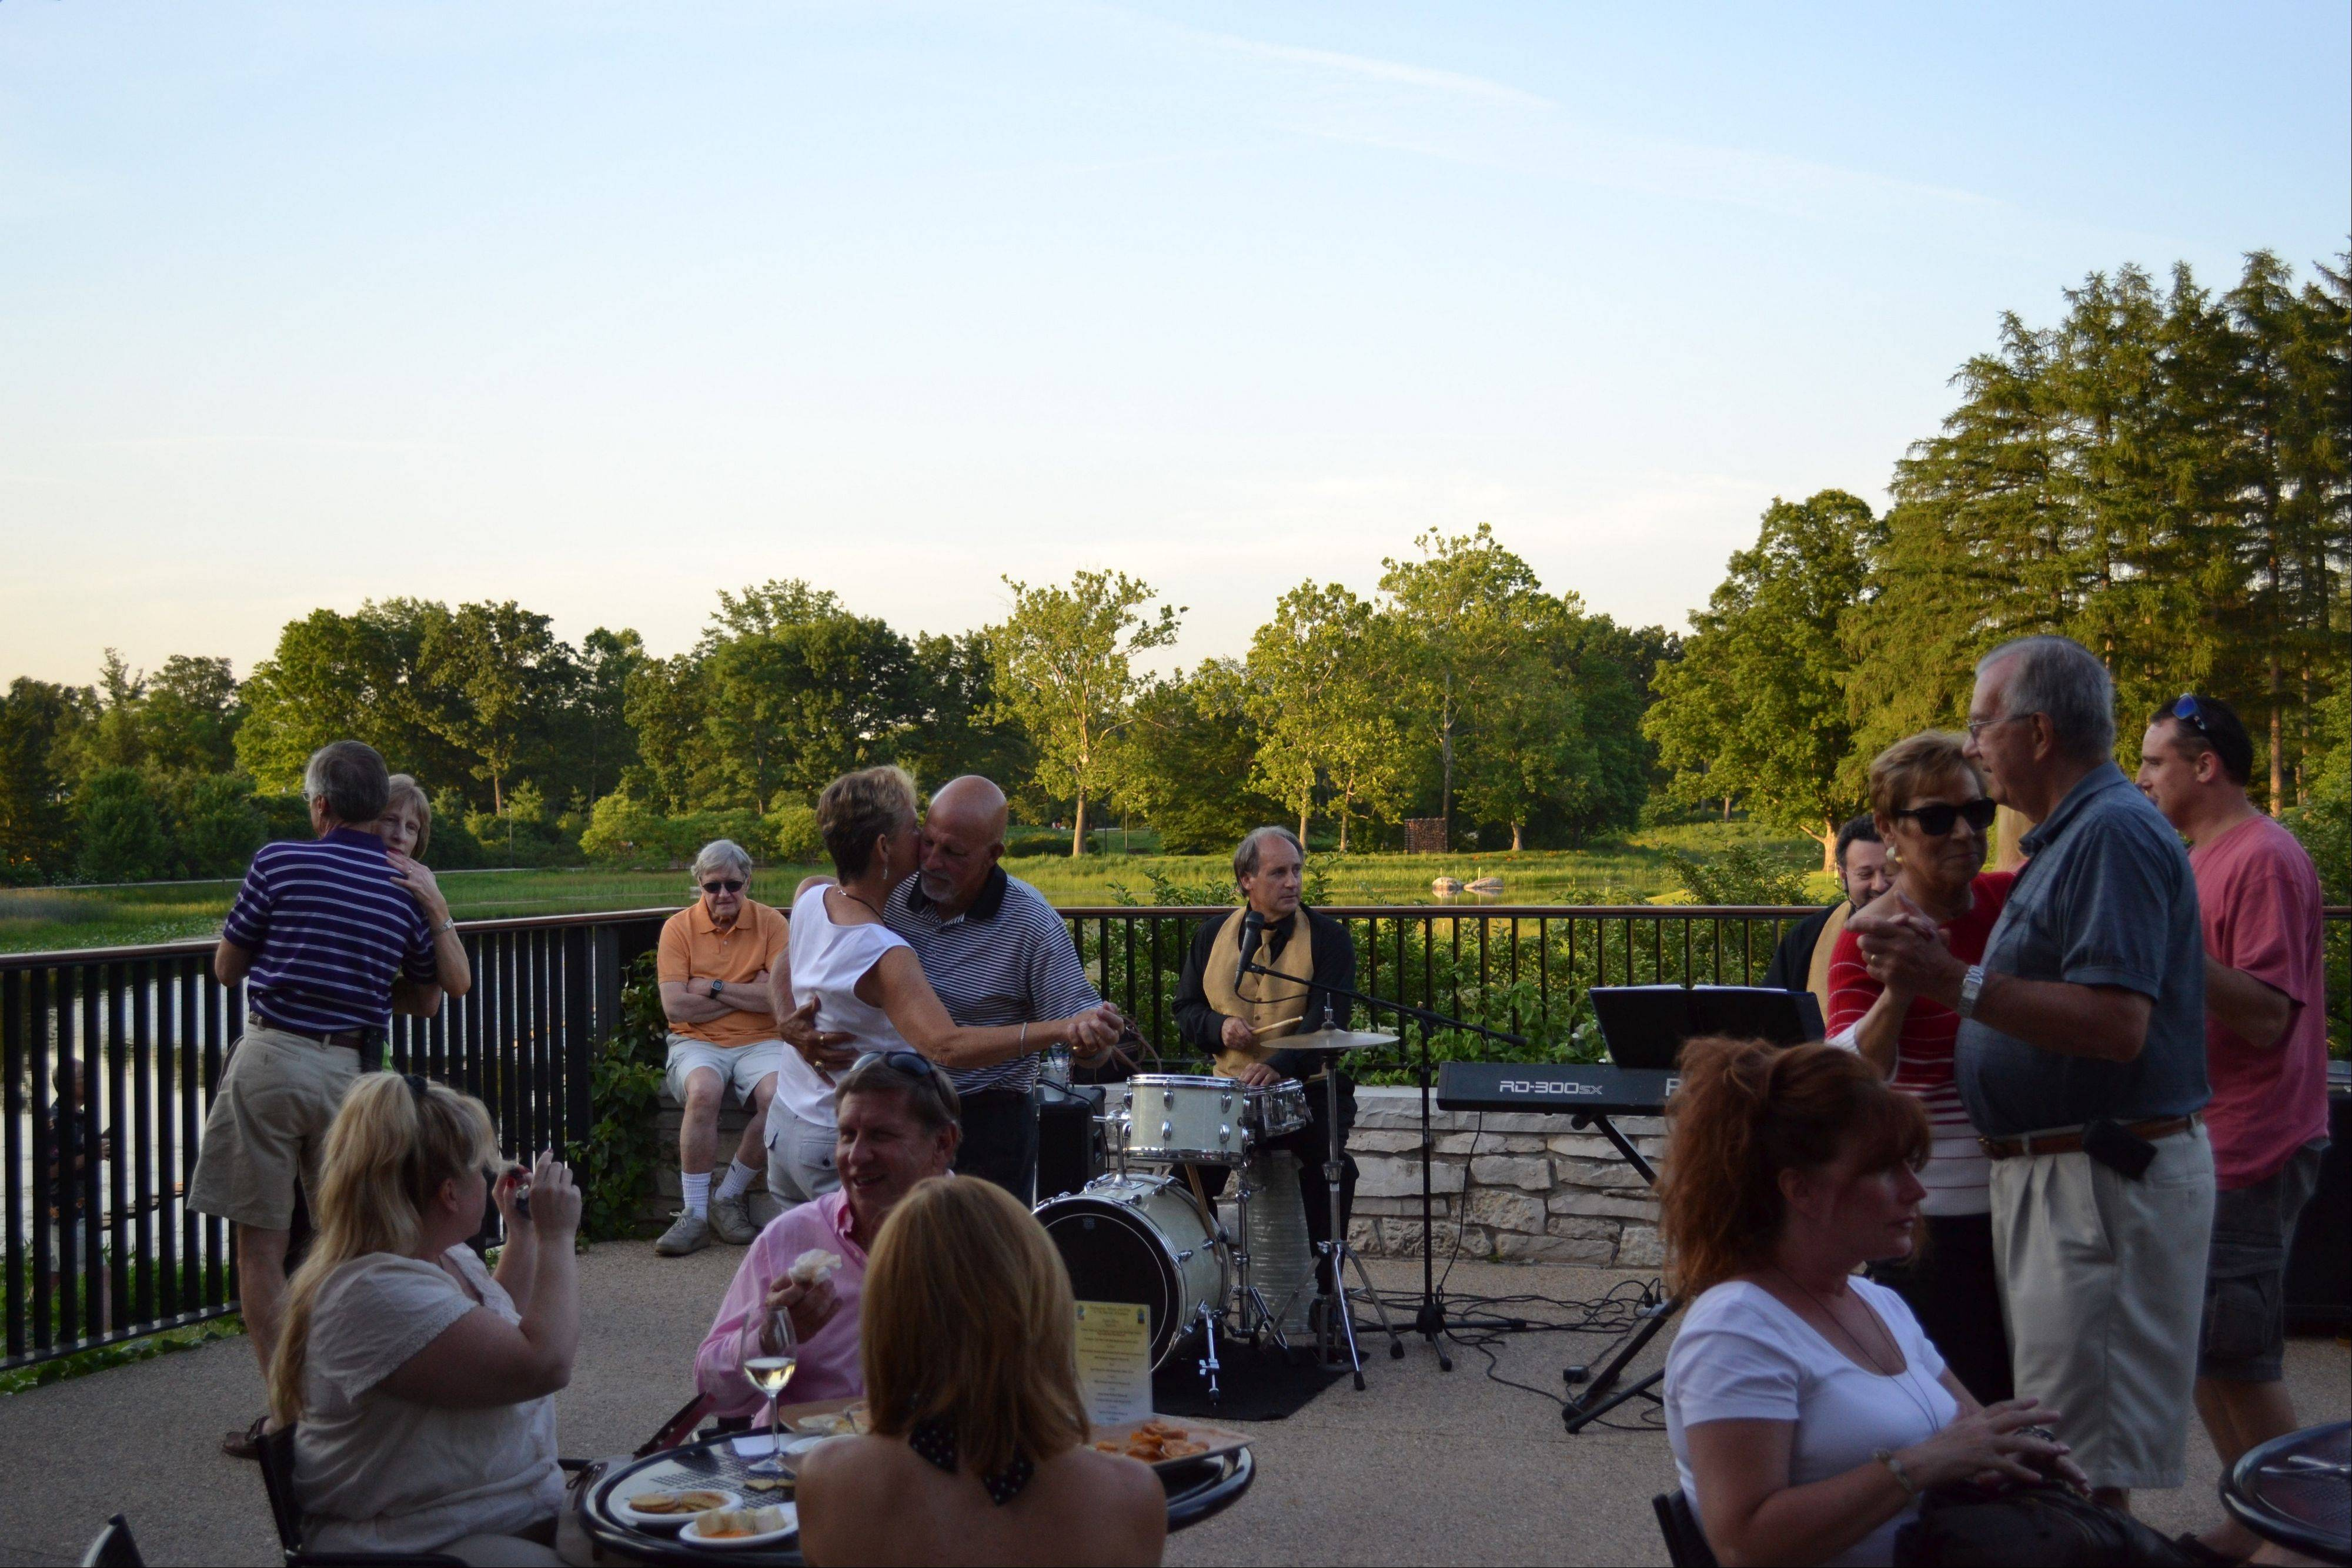 Enjoy wine, cheese and live music under the trees at the Morton Arboretum in Lisle on Wednesdays through August 15.